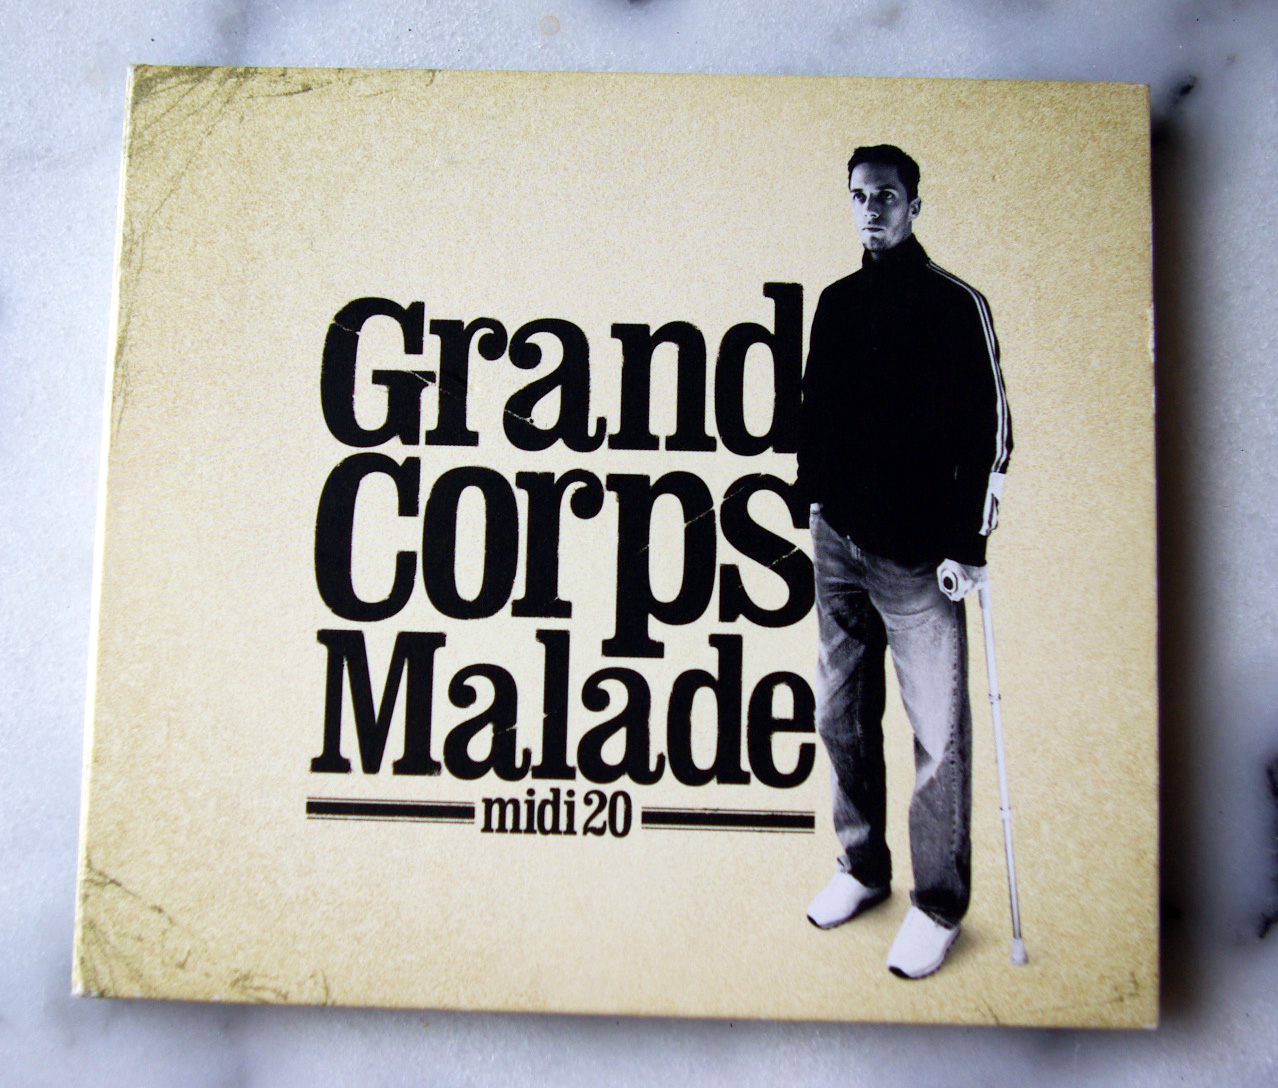 Grand corps malade rencontres mp3 download